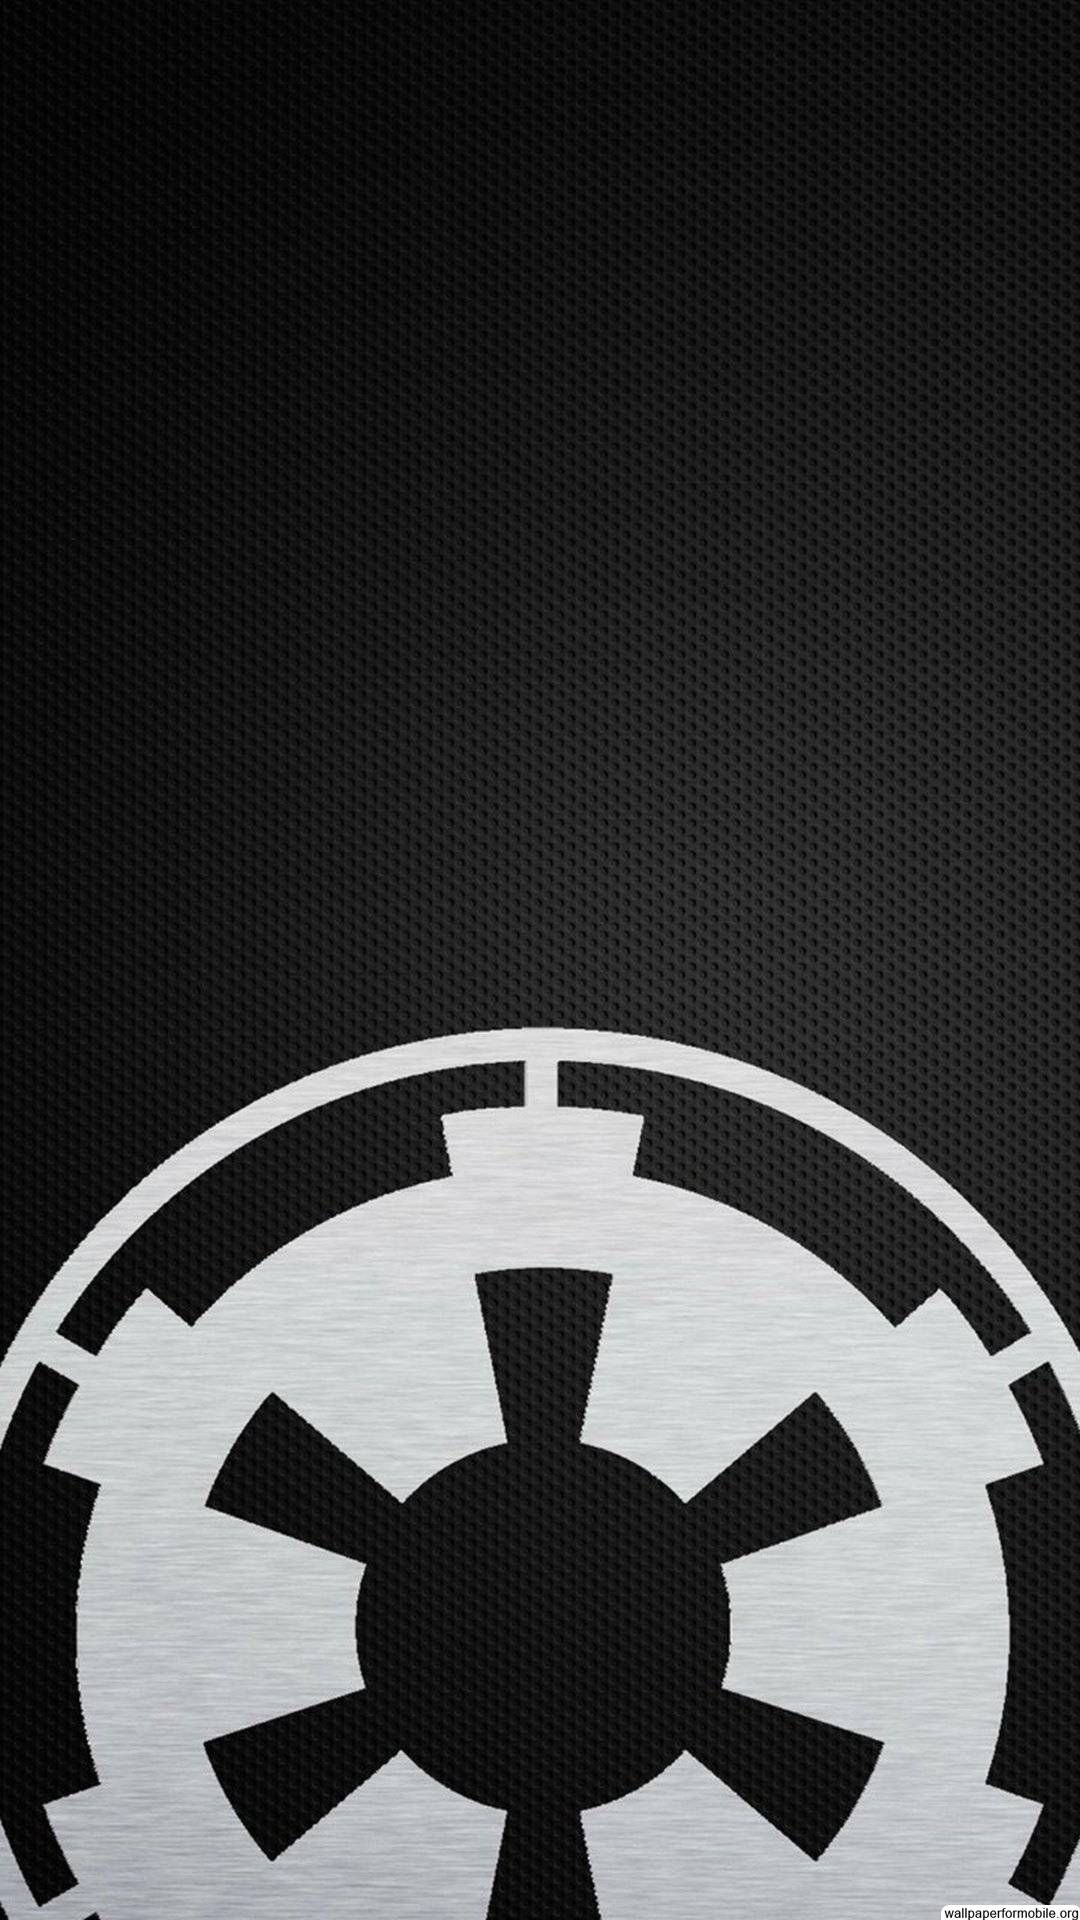 The Emblem Of The Galactic Empire